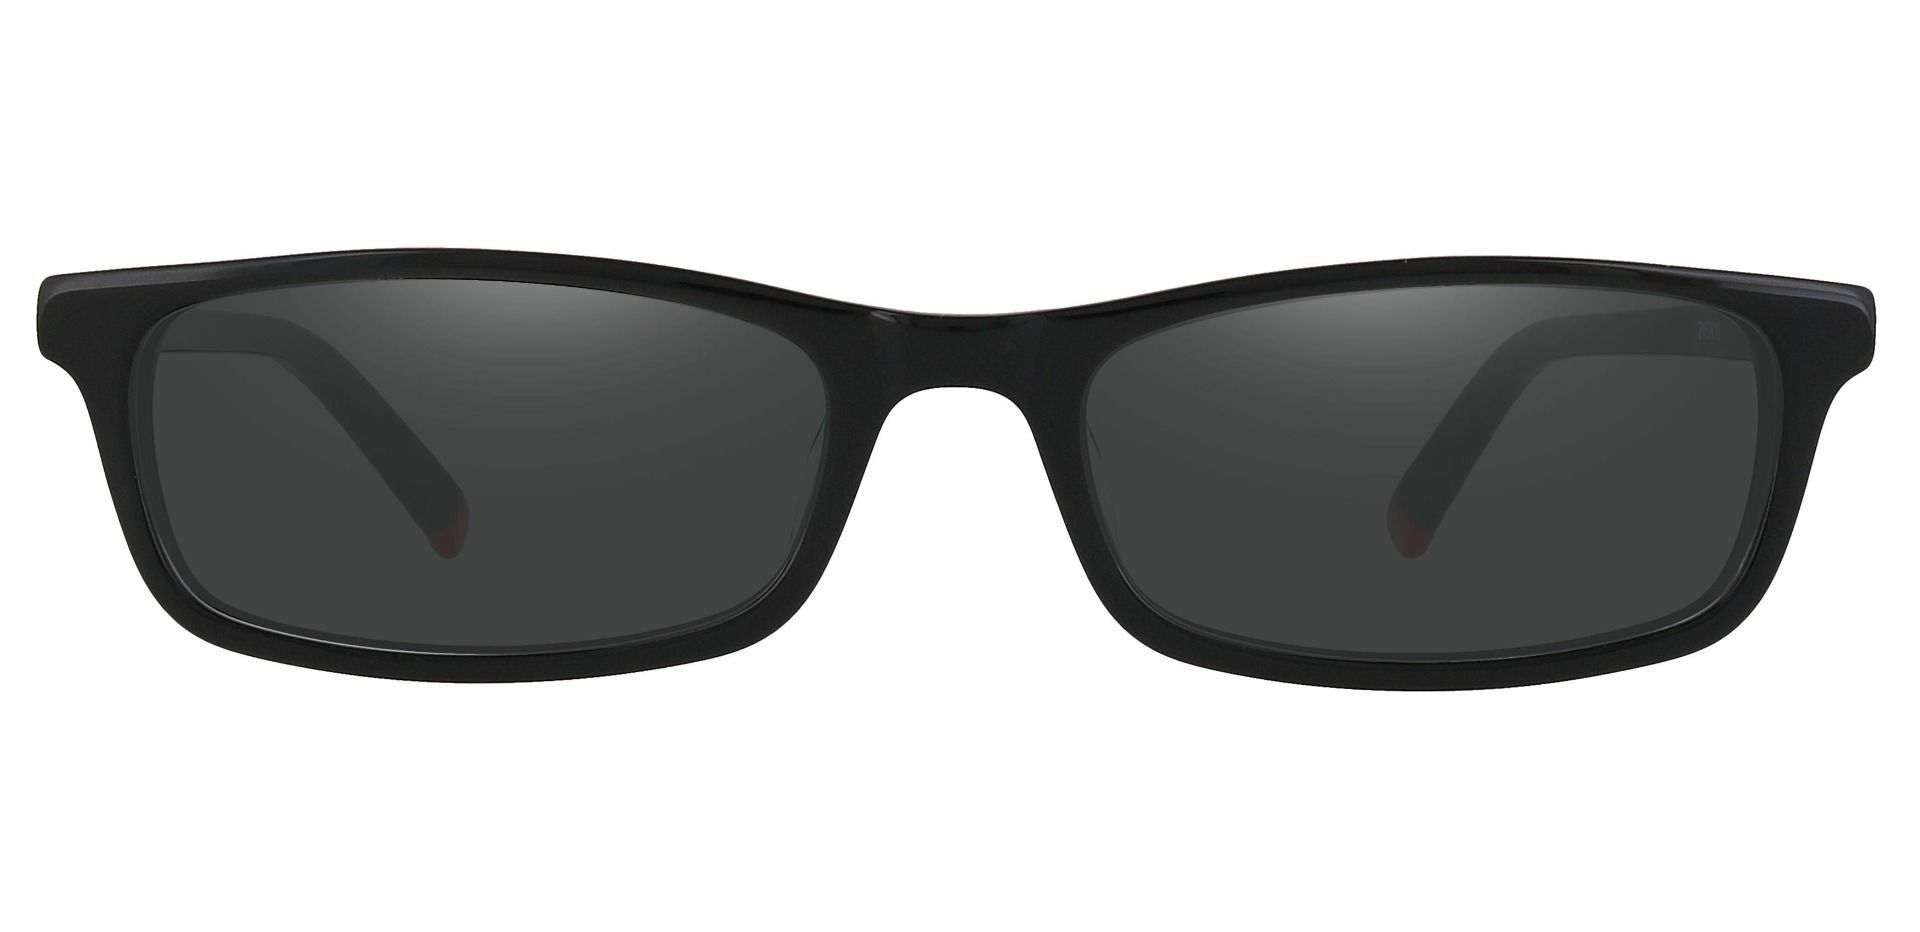 Palisades Rectangle Reading Sunglasses - Black Frame With Gray Lenses